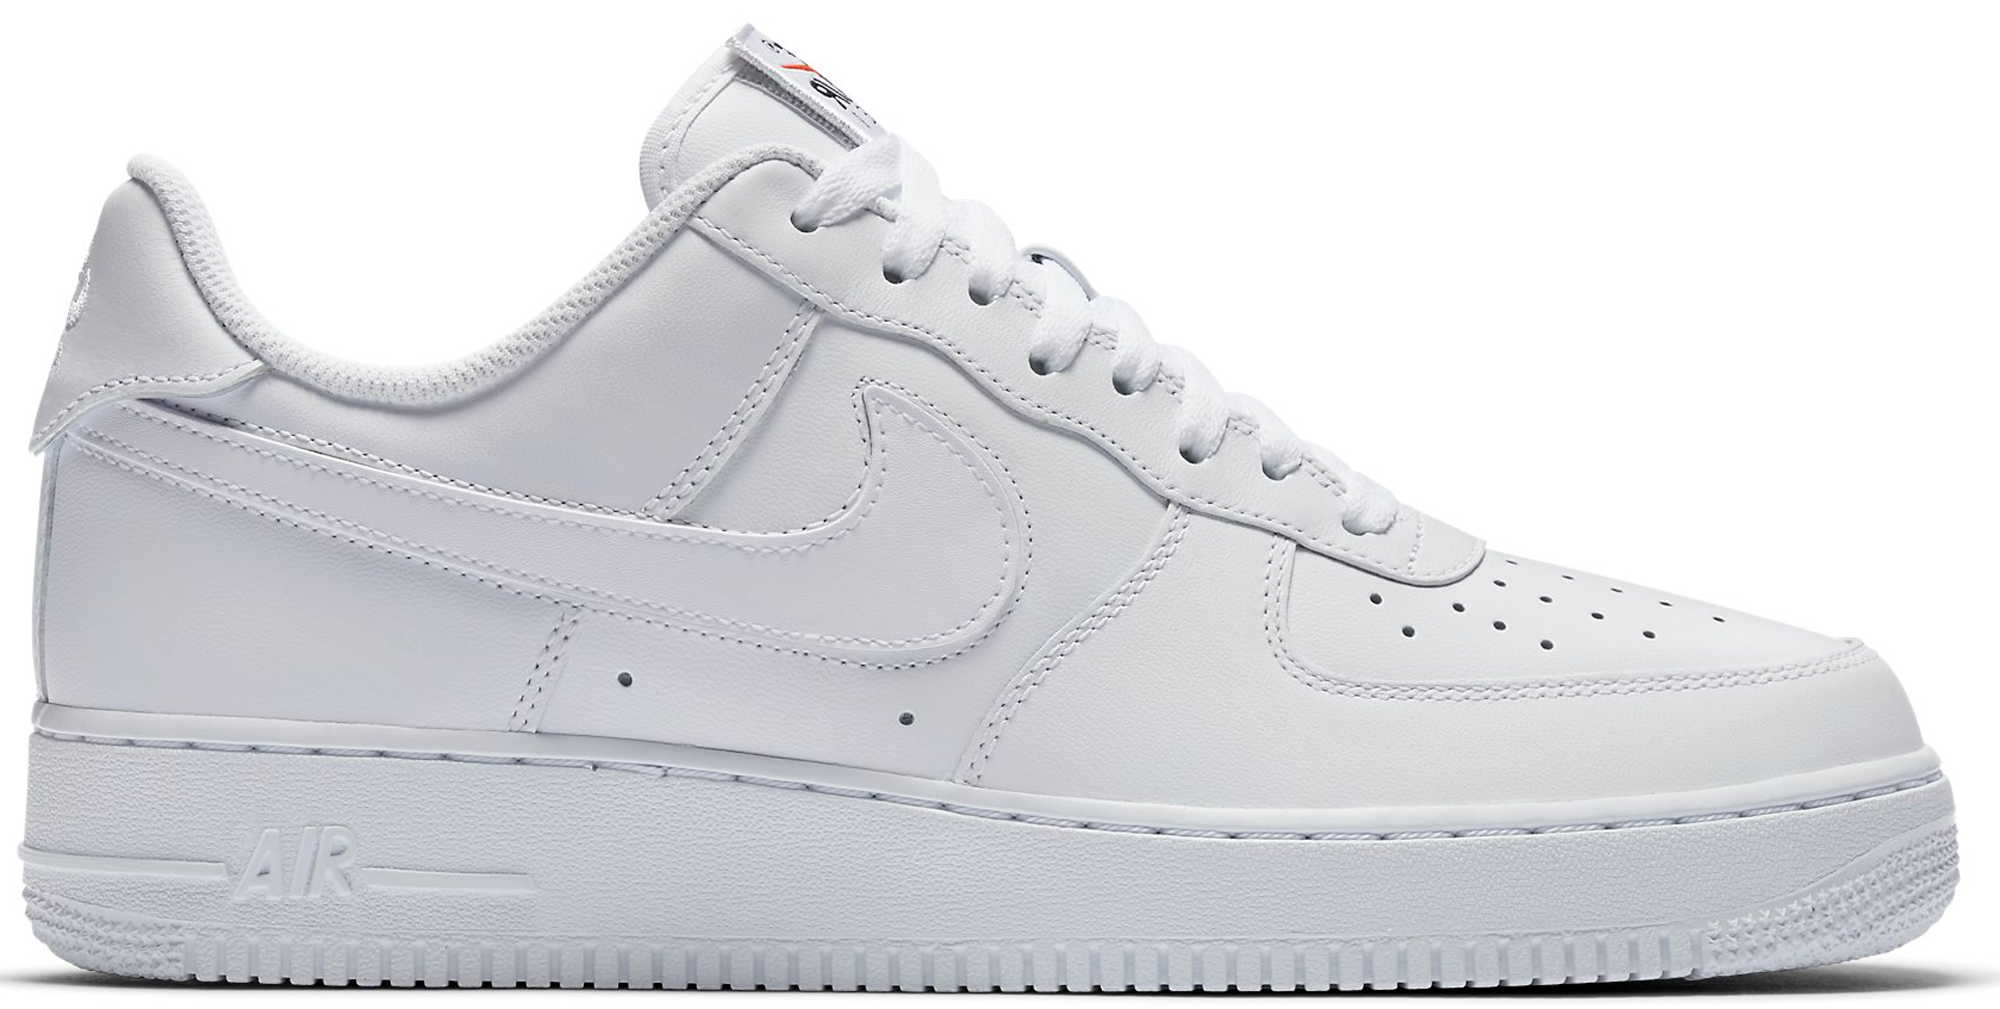 Air Force 1 Low Swoosh Pack All Star 2018 (White)